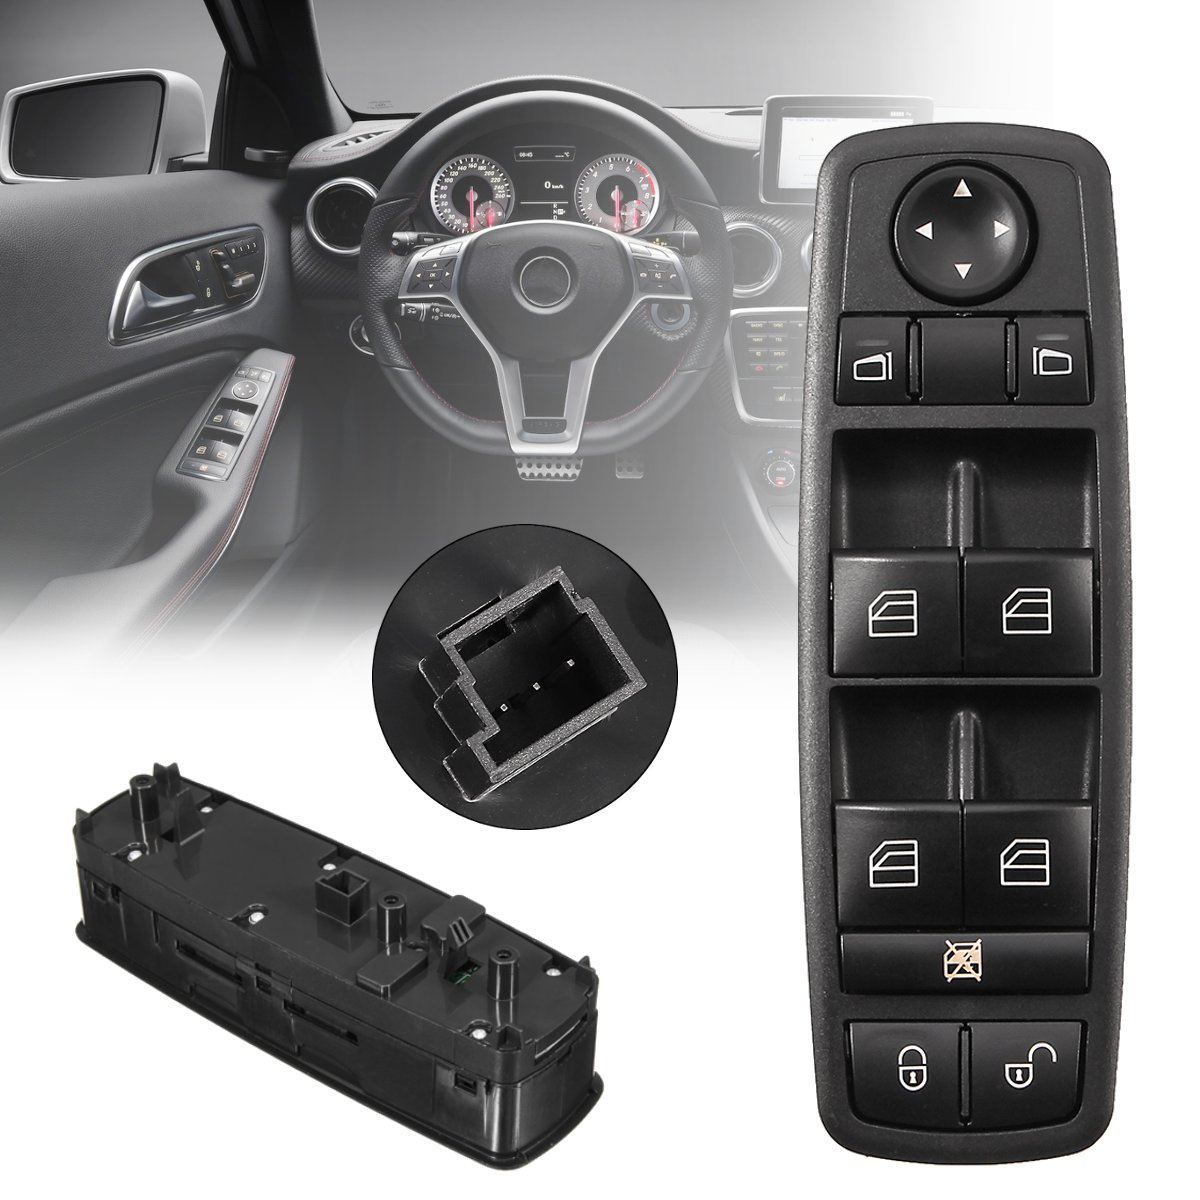 Electric Power Window Control Master Switch For Mercede For Benz B-Class W245 A-Class W169 2004-2012 <font><b>A1698206610</b></font> image